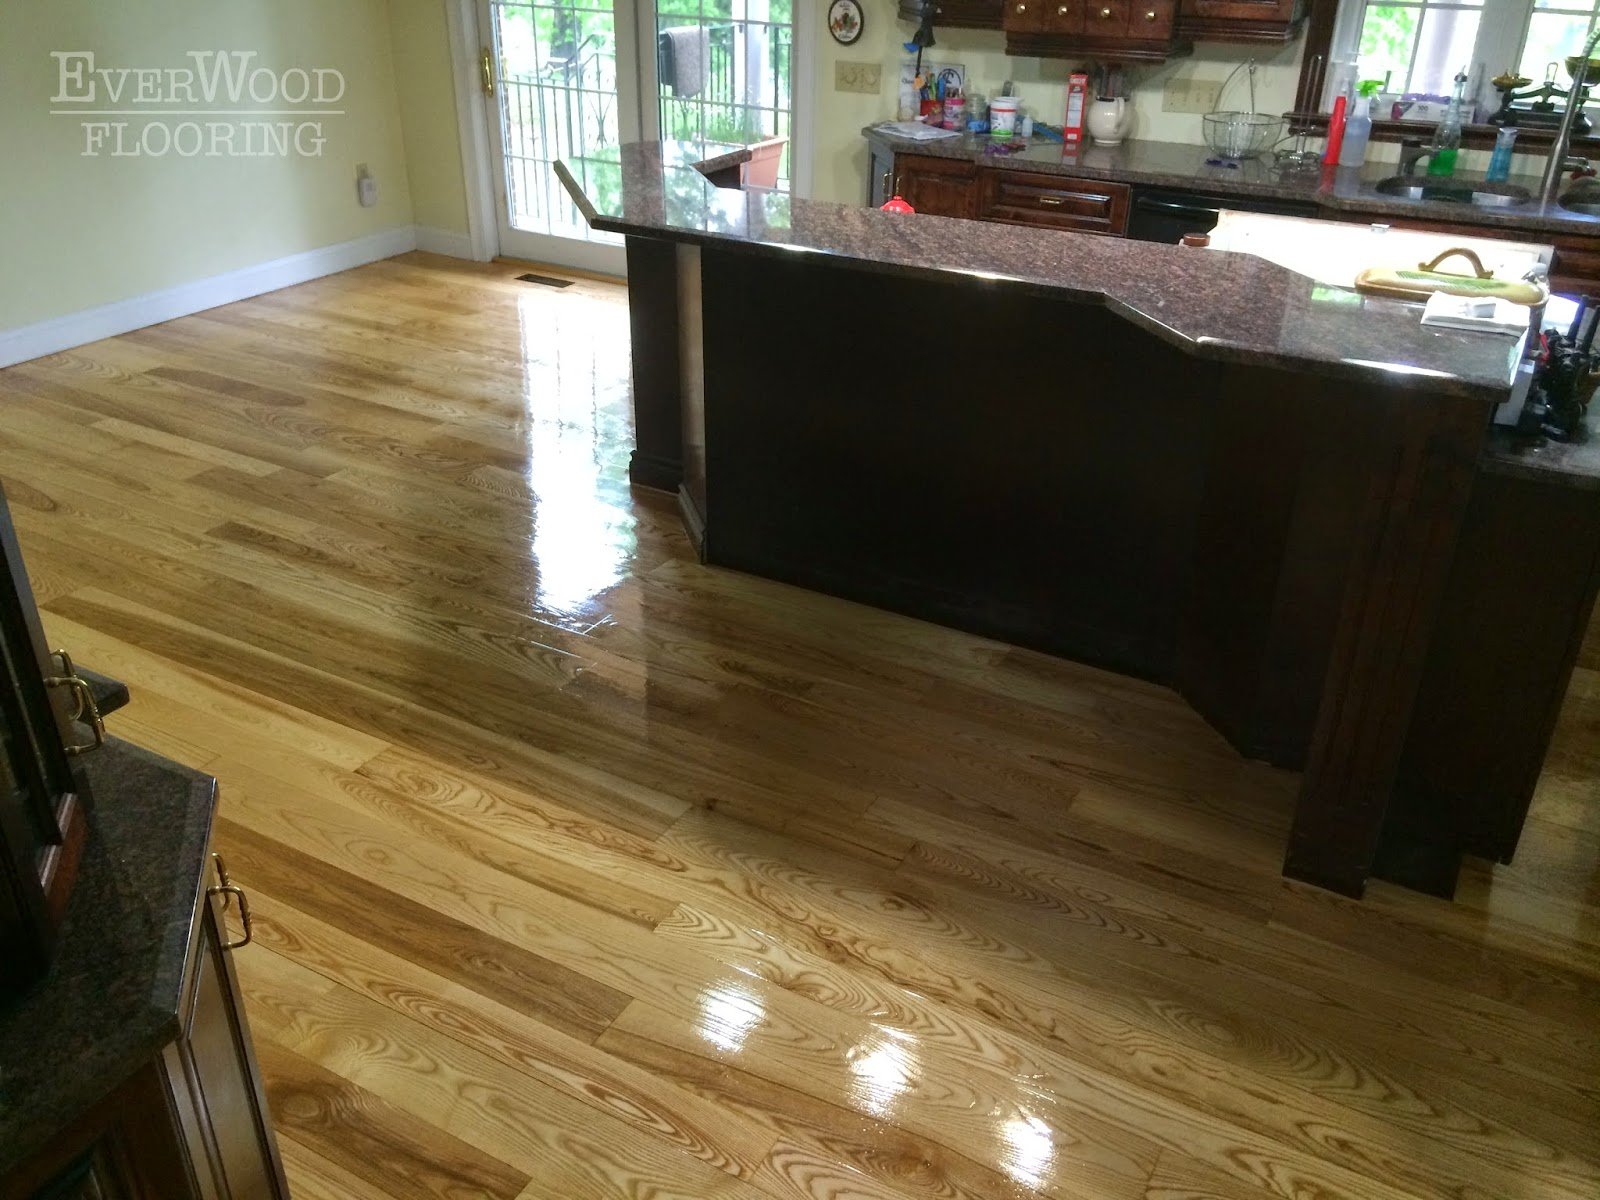 The Home Owner Had A Random Width White Ash Hardwood Installed Which We Refinished With Bona Woodline Oil Modified Polyurethane